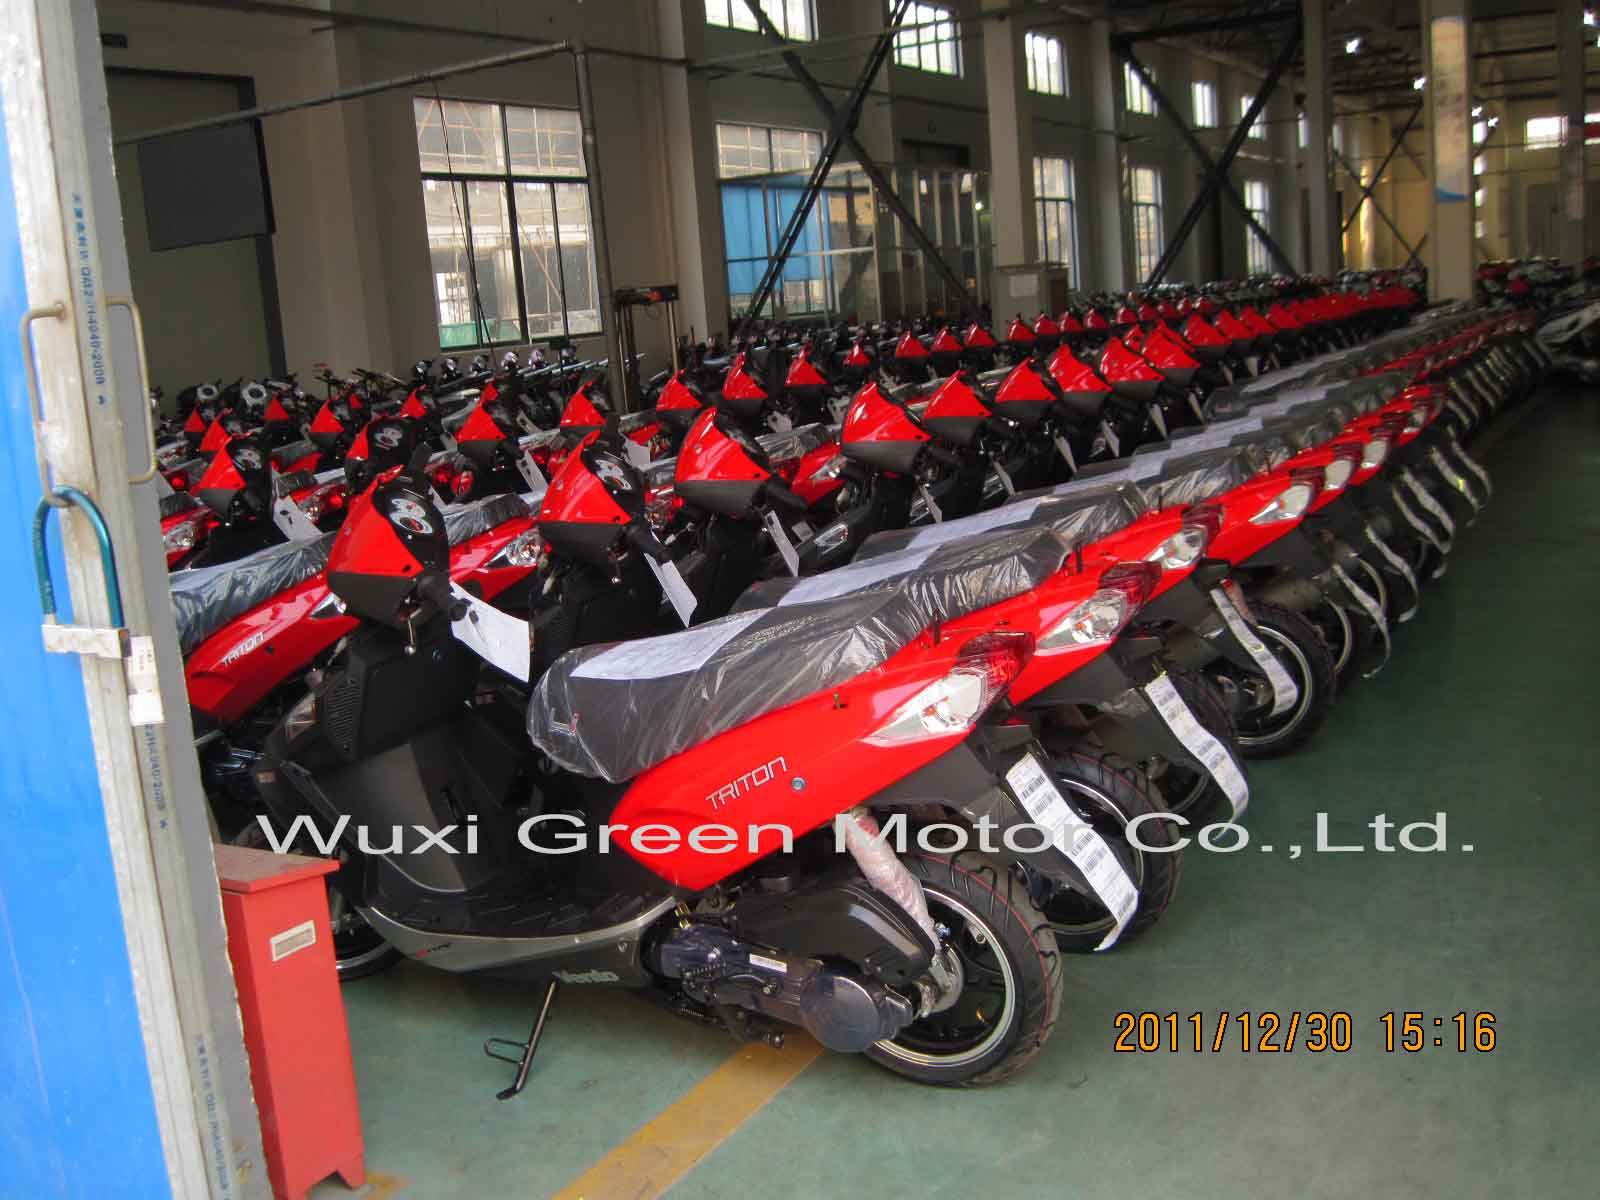 Scooter Expert and Exporter